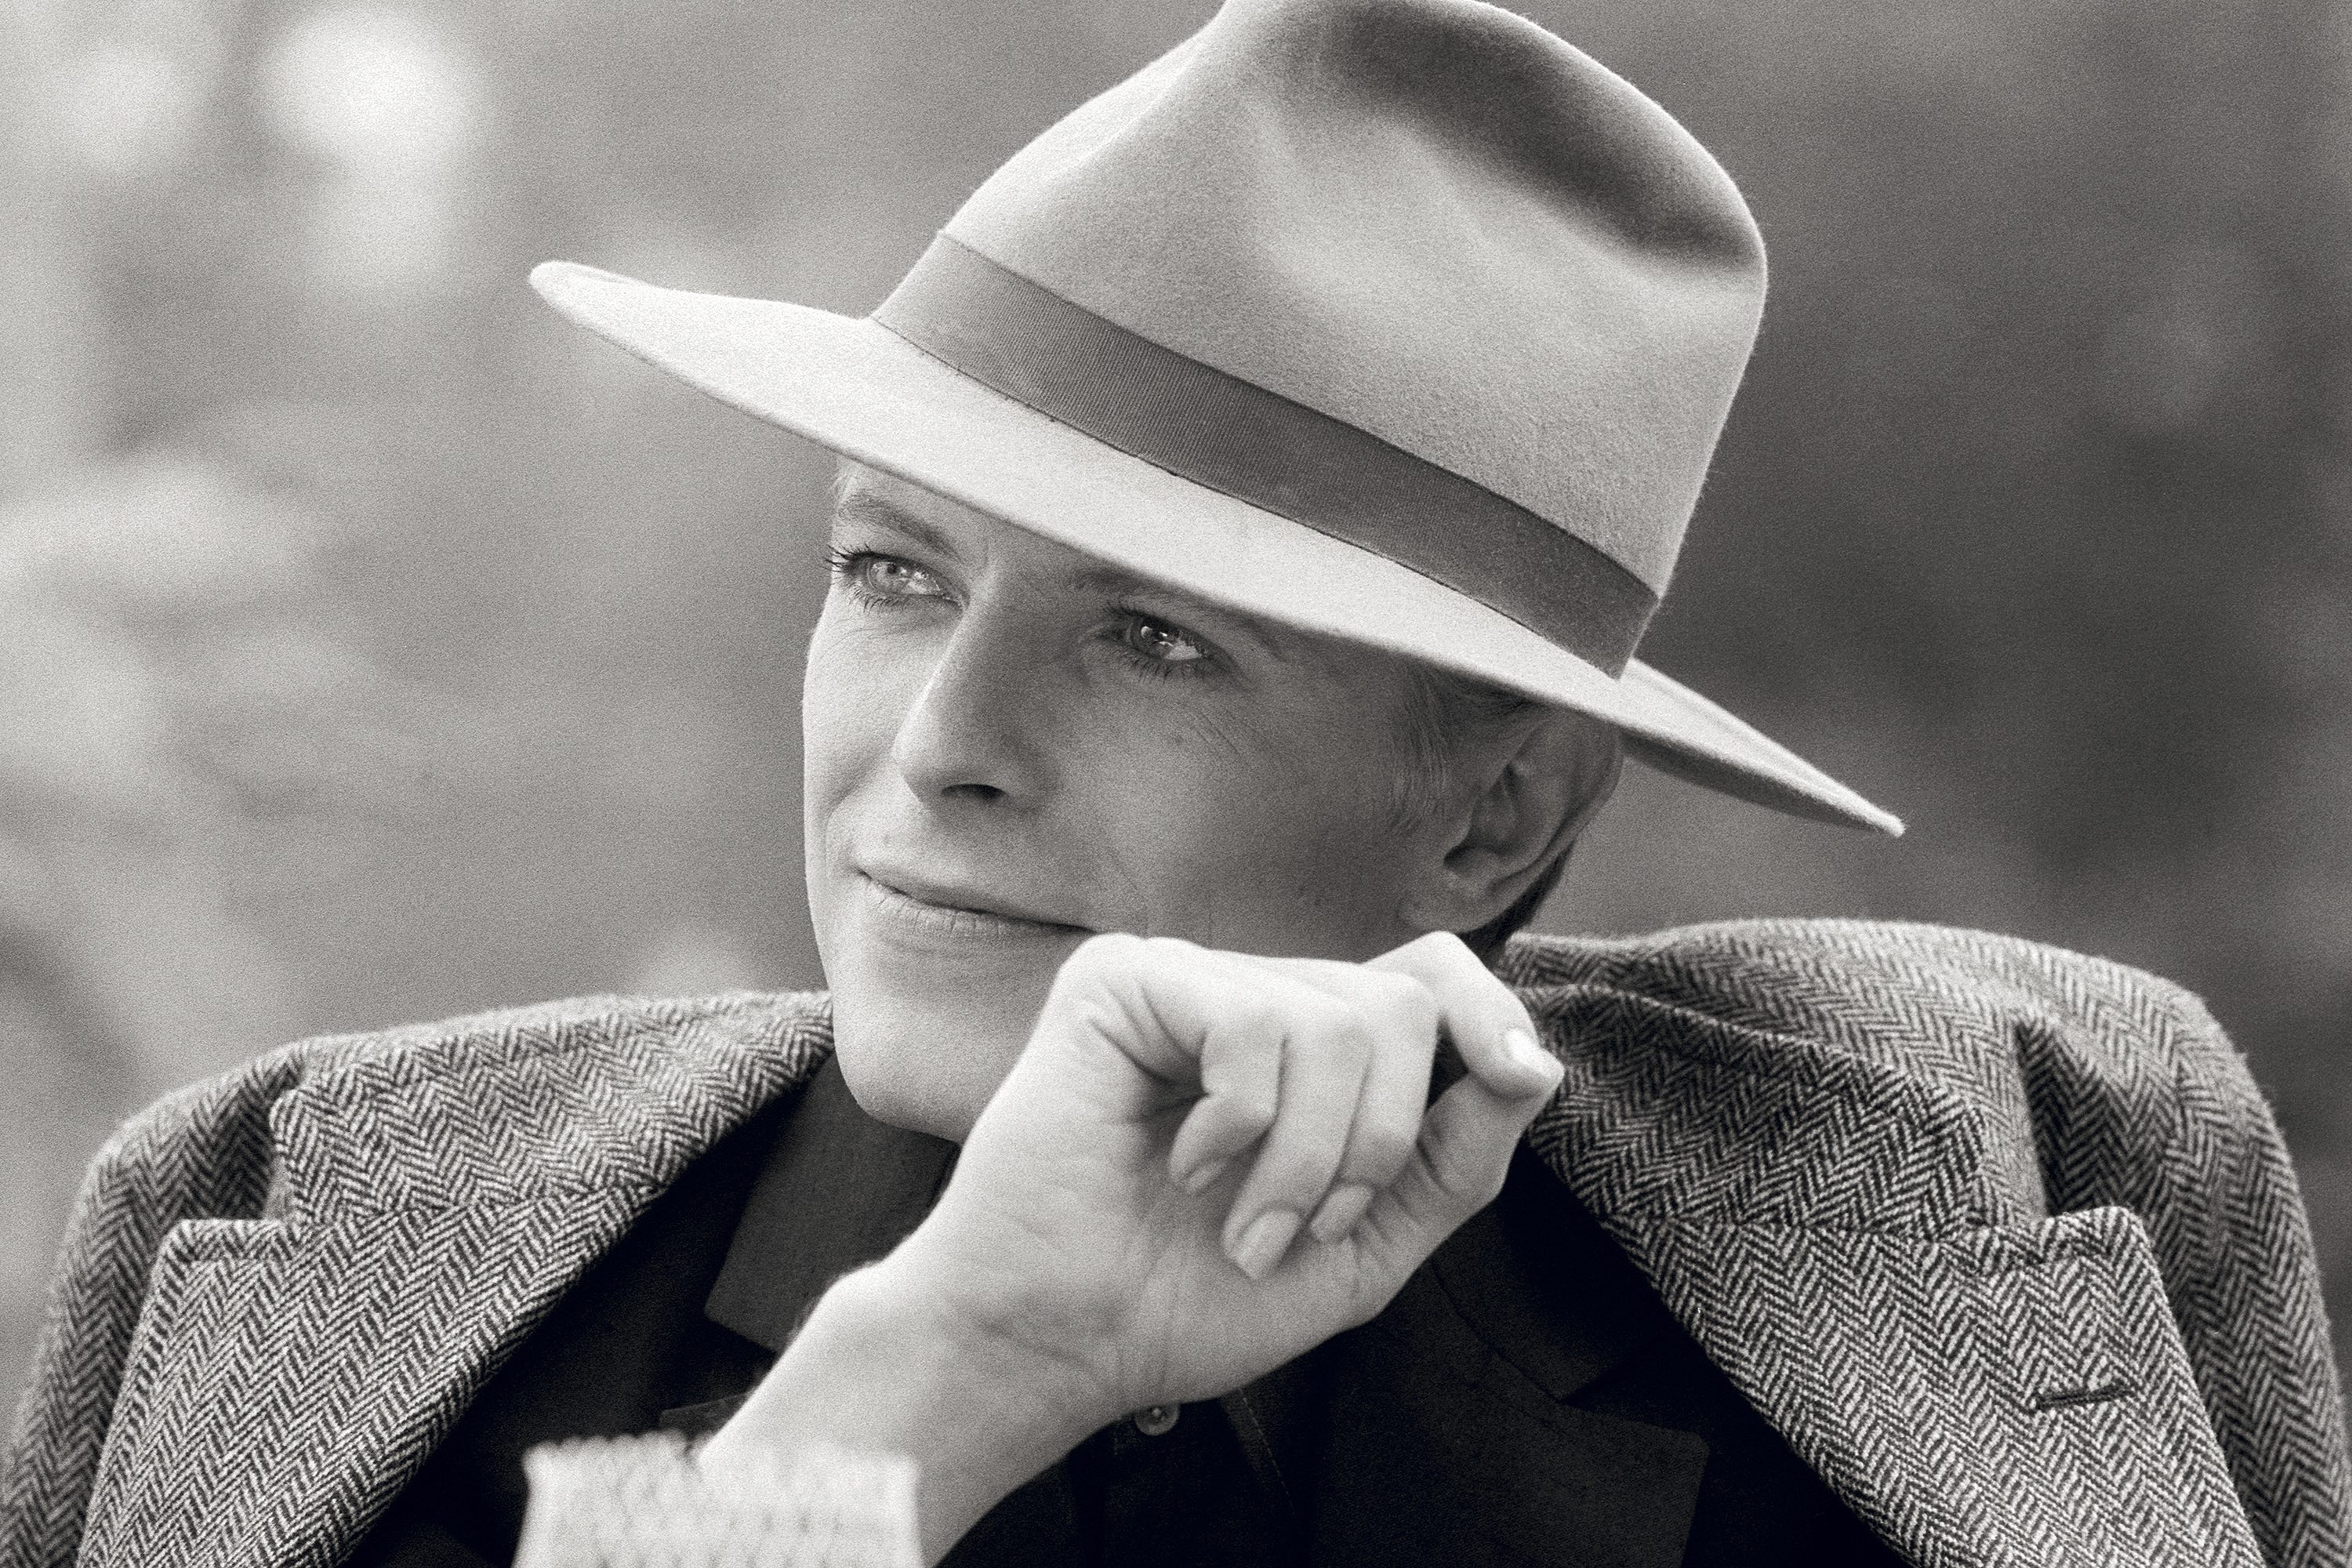 David Bowie, Terry O'Neill